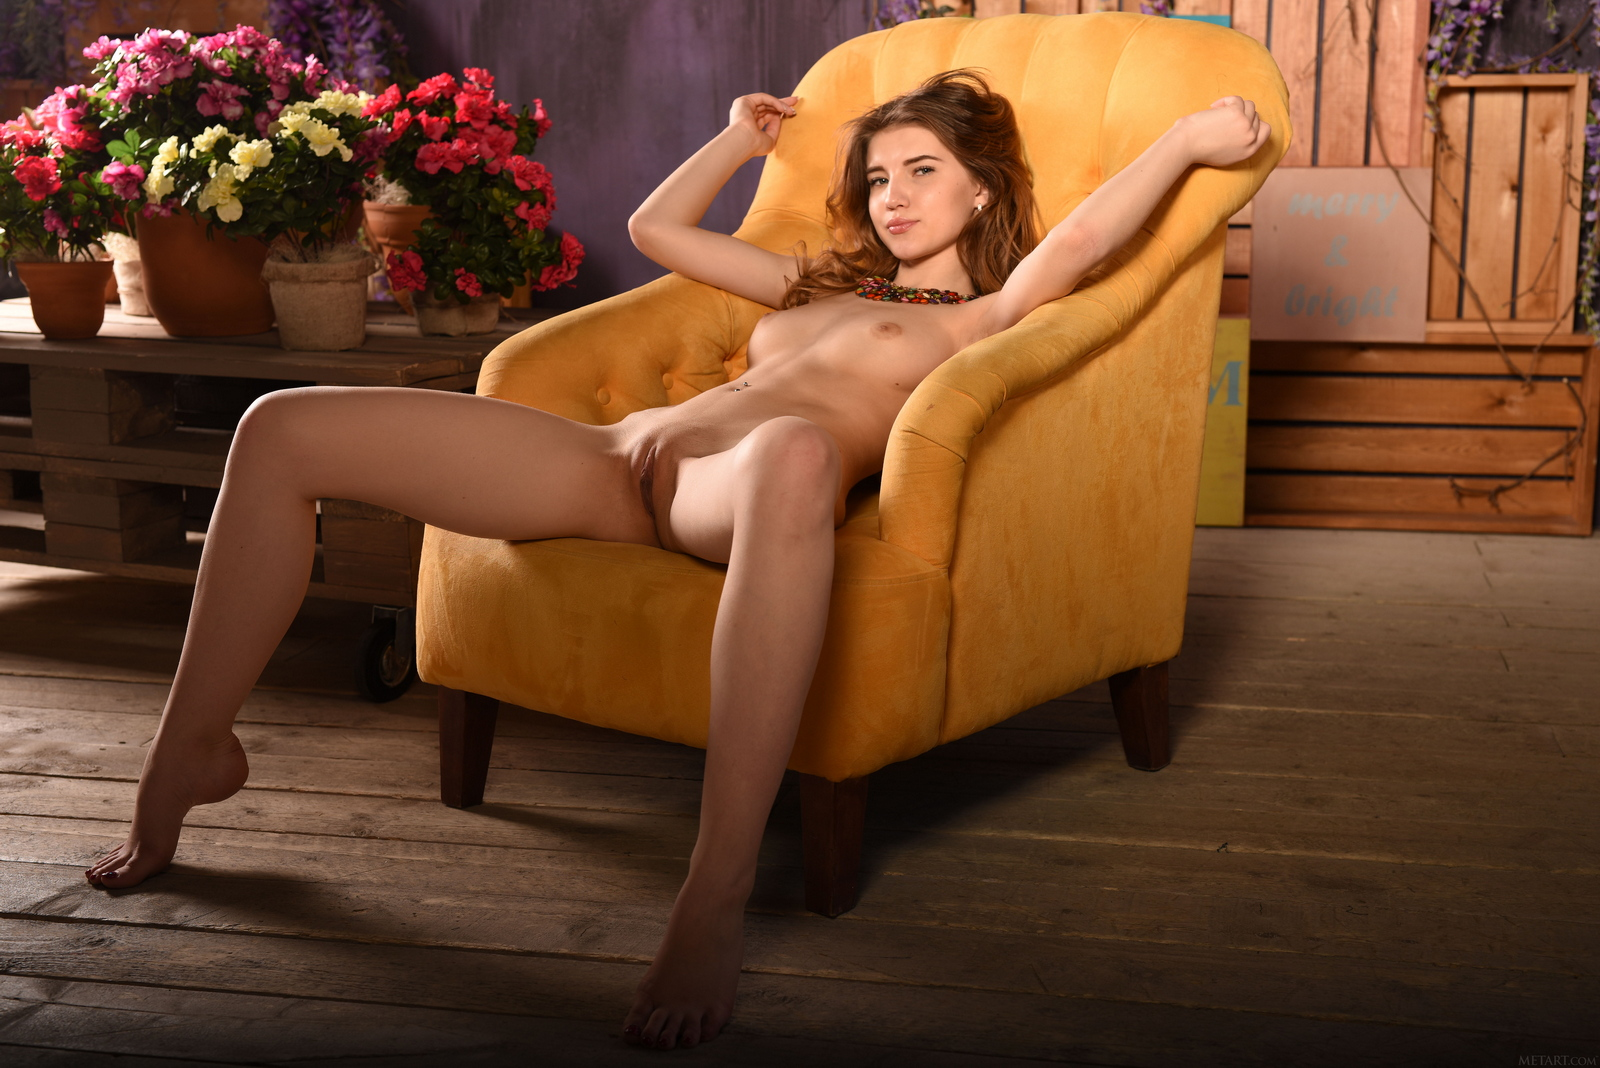 caramel-yellow-armchair-young-nude-pussy-met-art-03